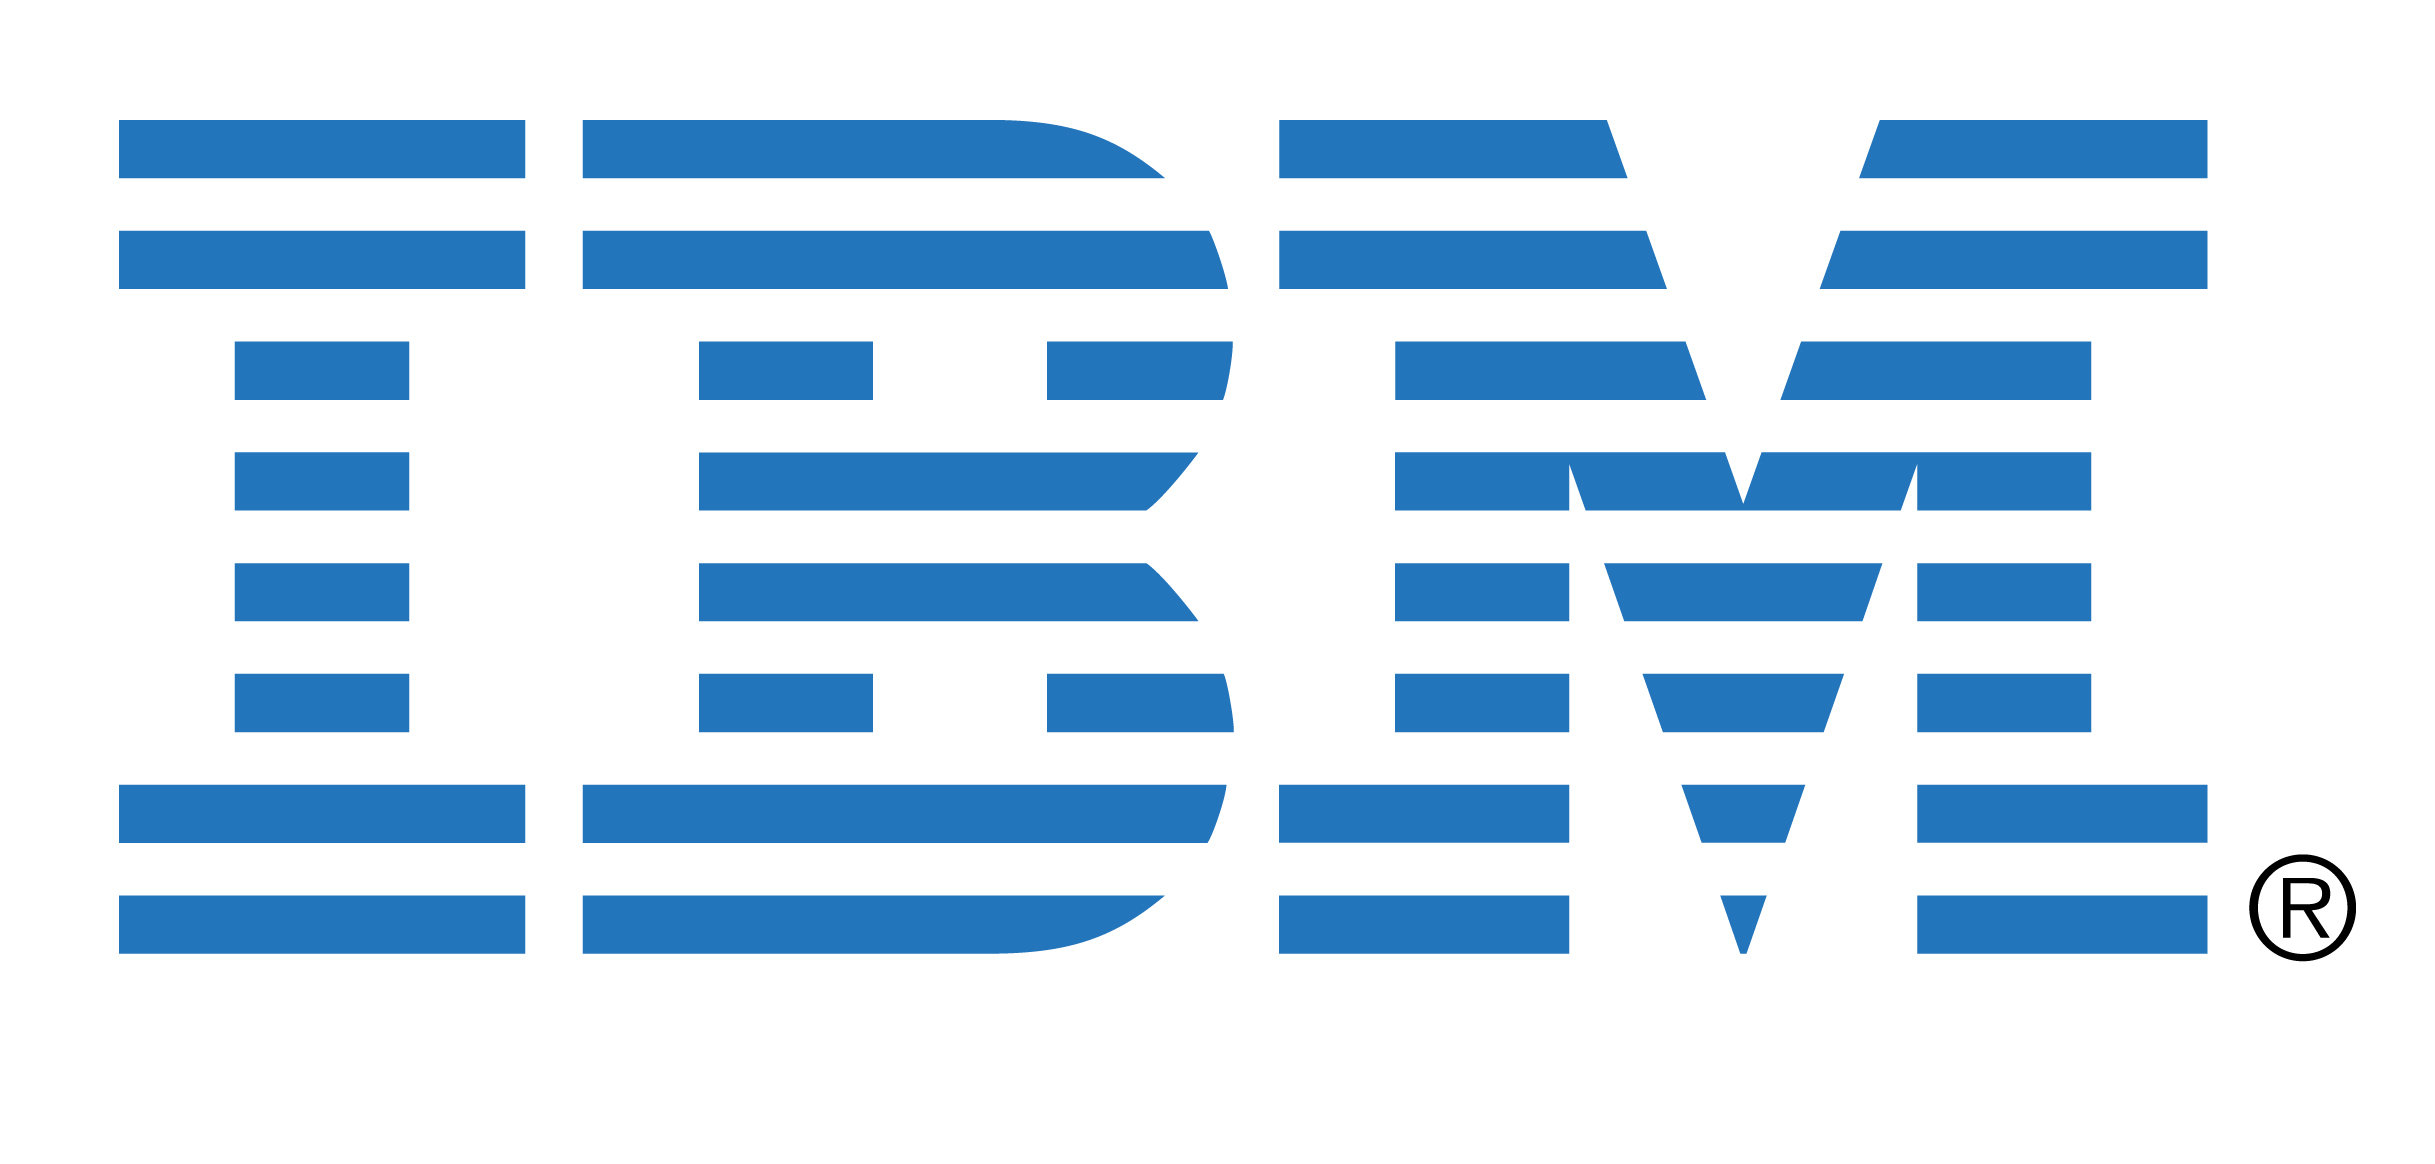 IBM Cloud Identity Connect Employee per Month* D1SNFLL